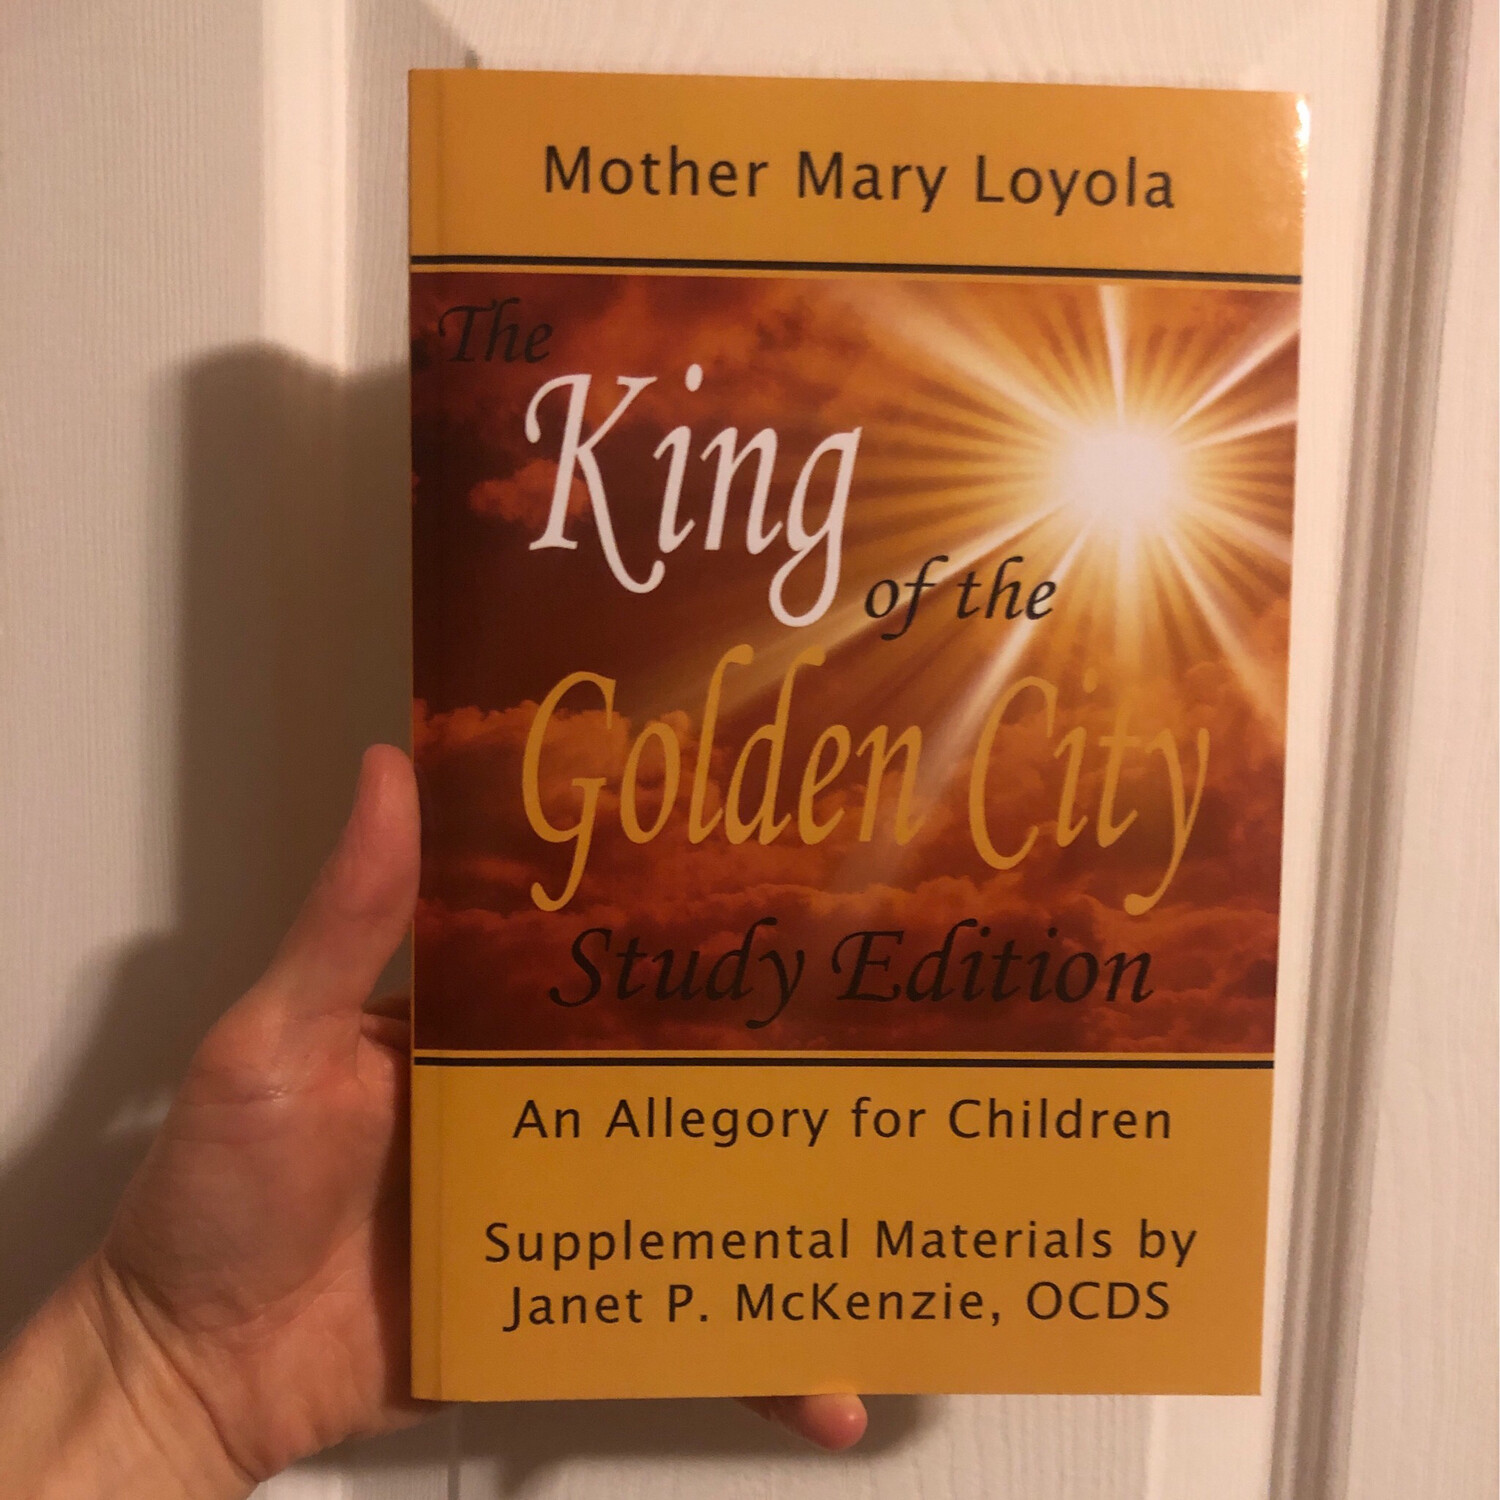 King of the Golden City by Mother Mary Loyola